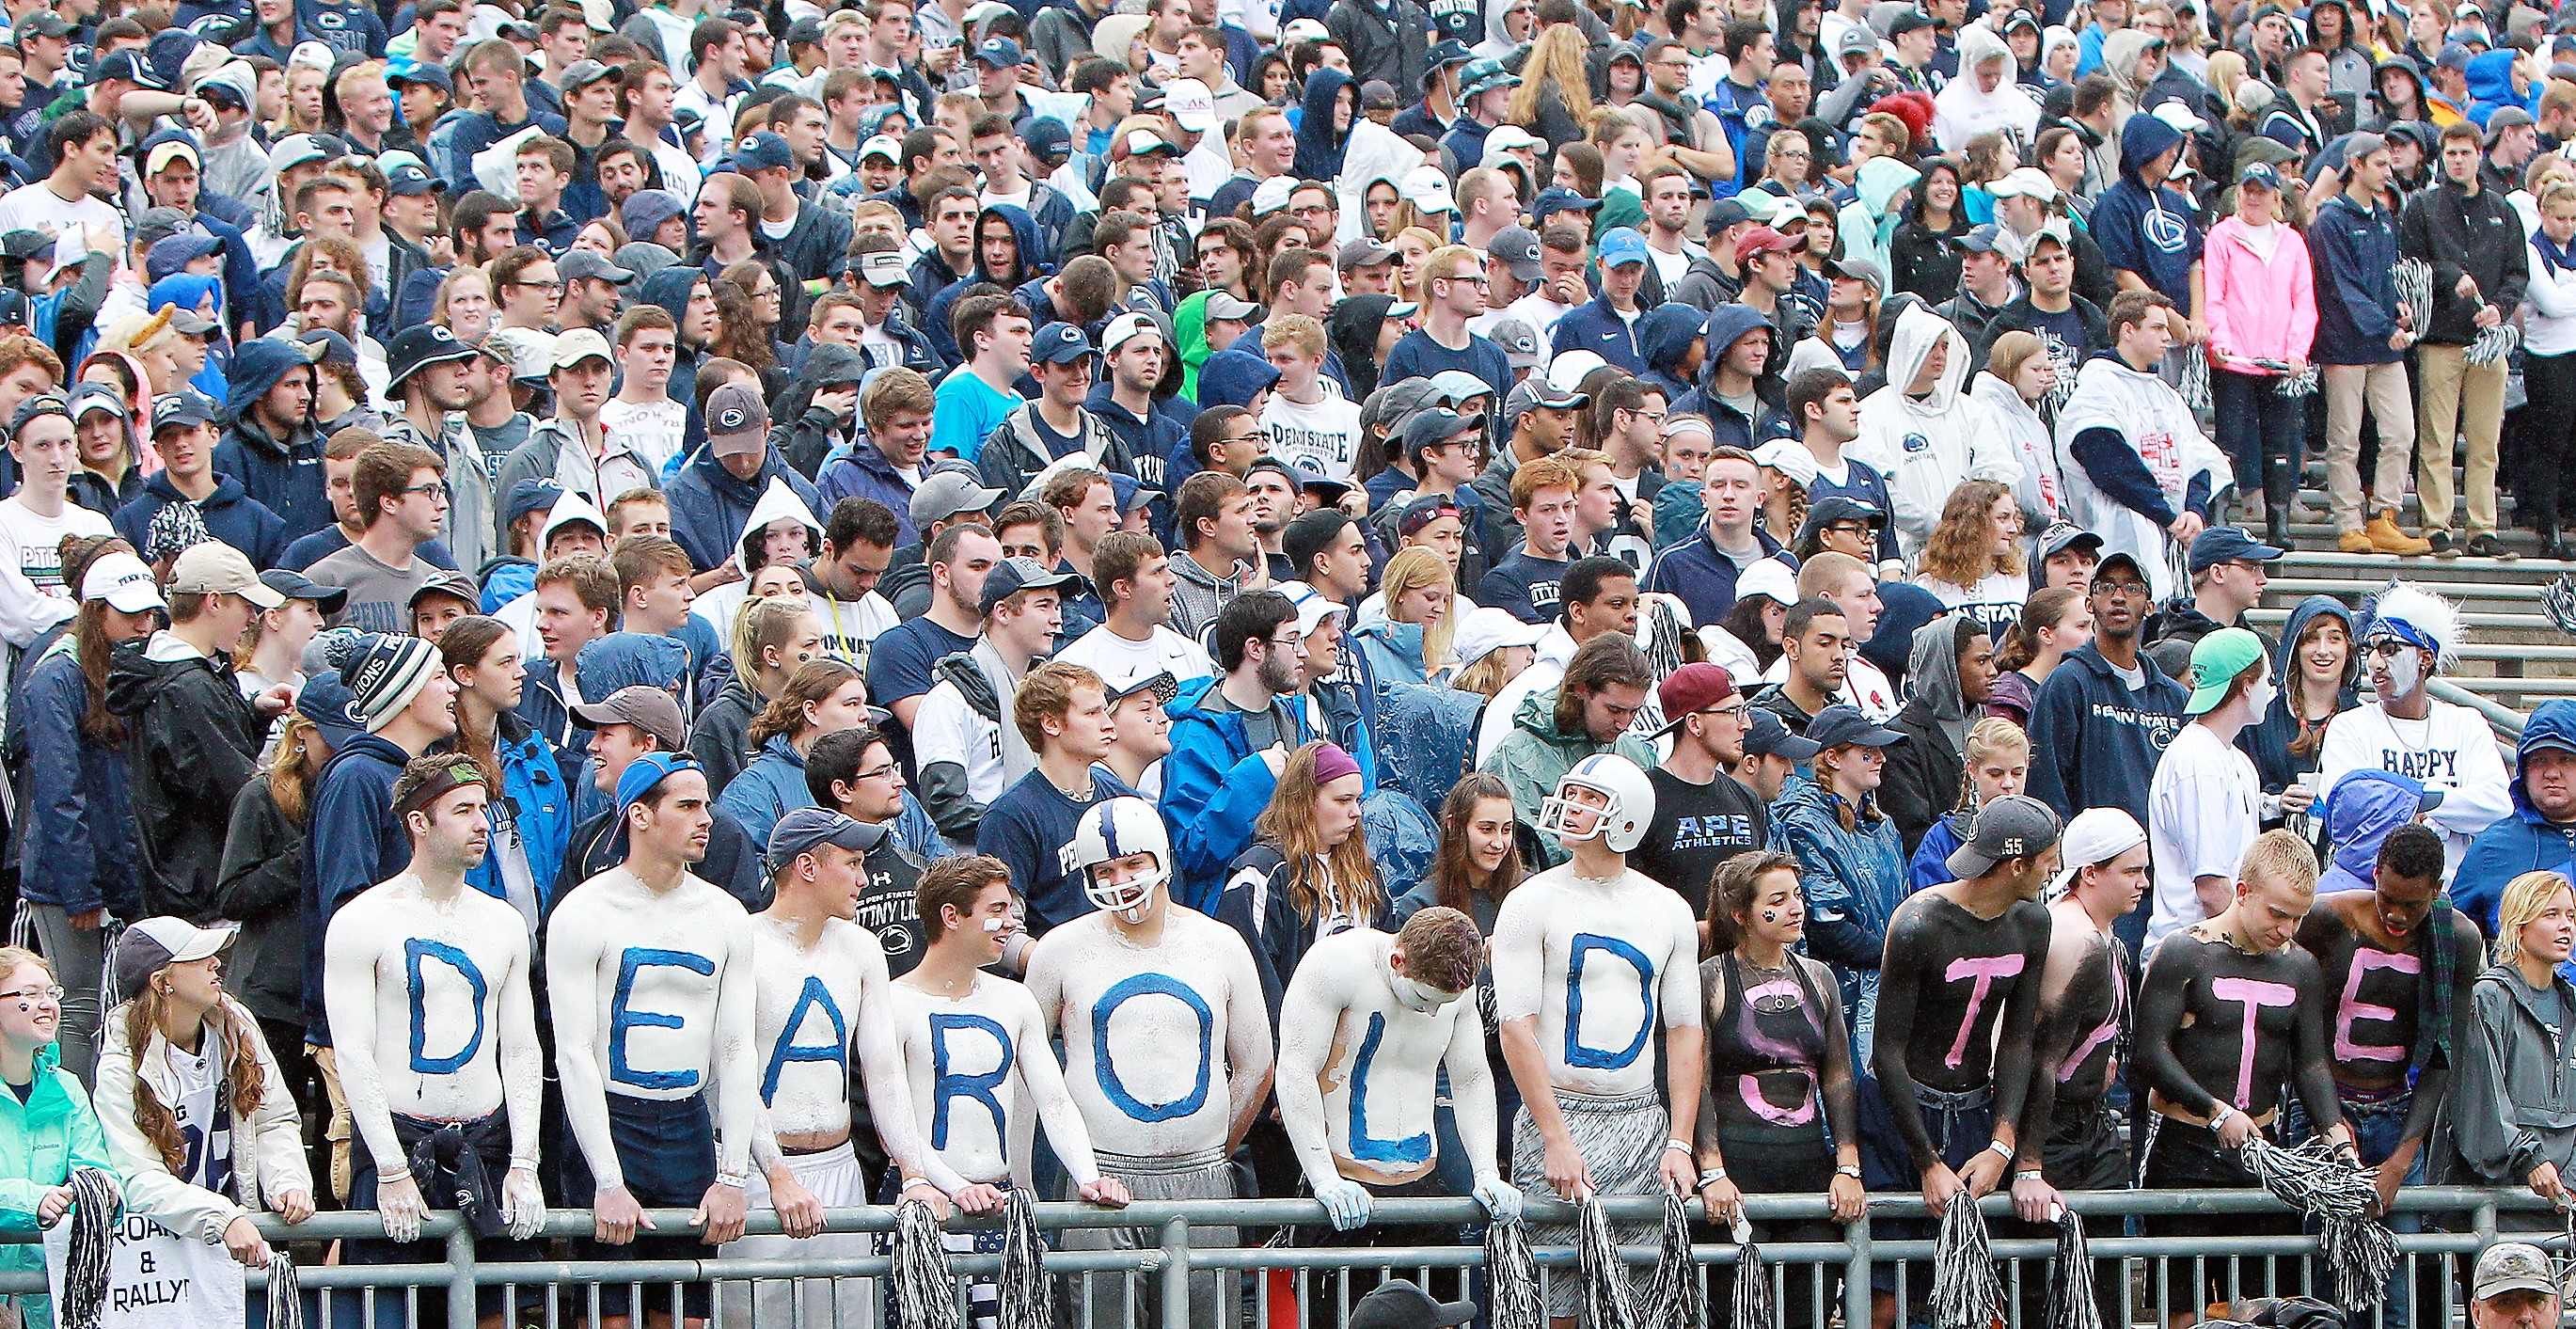 Penn State Football Crowd